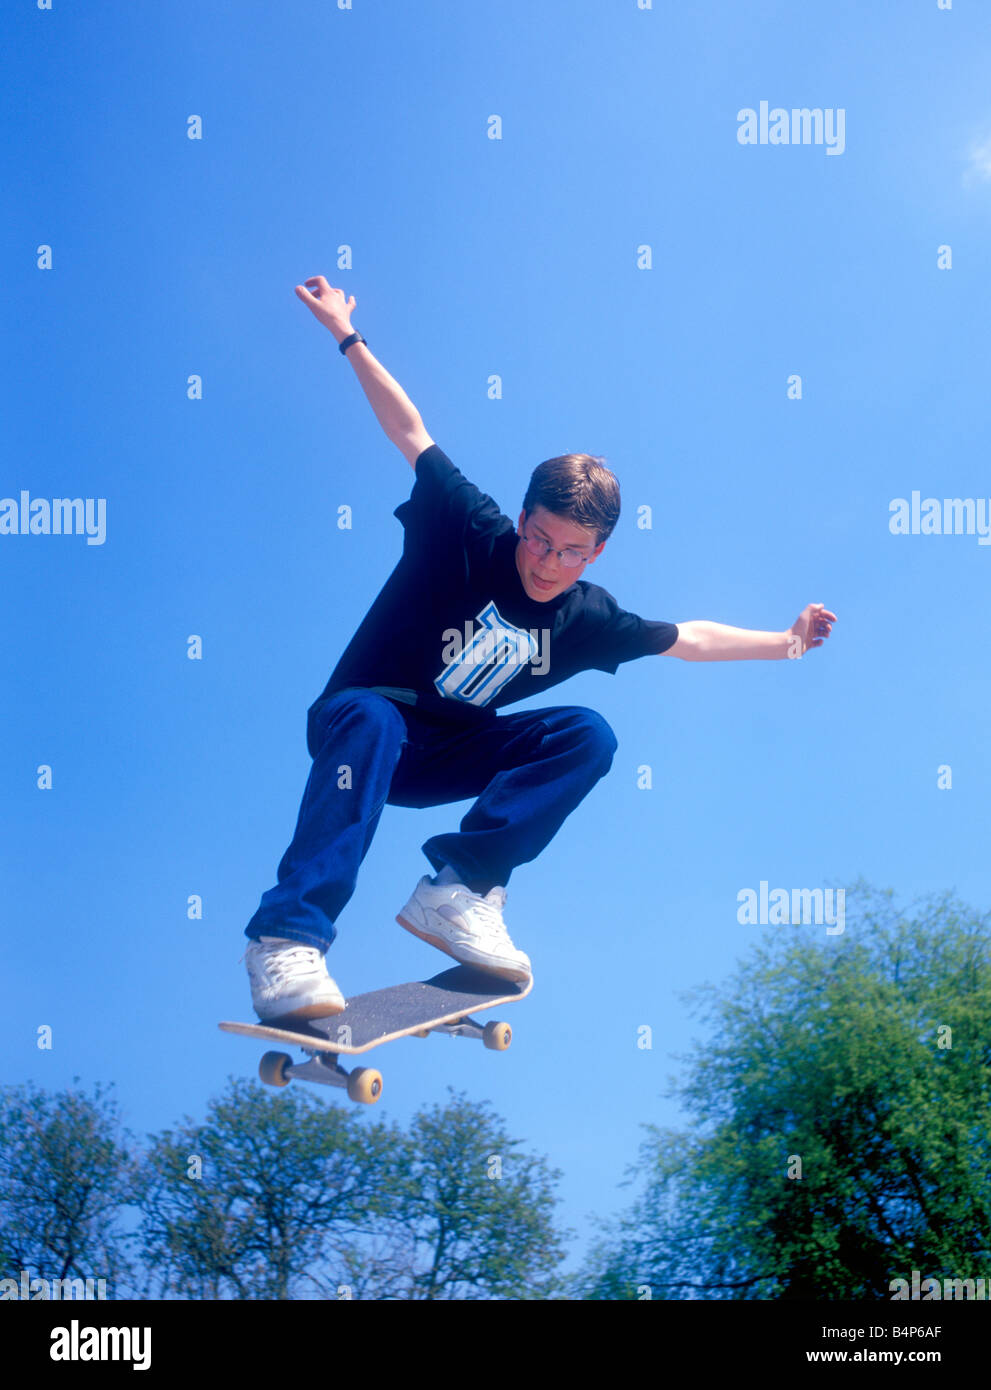 young boy jumping with his skateboard - Stock Image